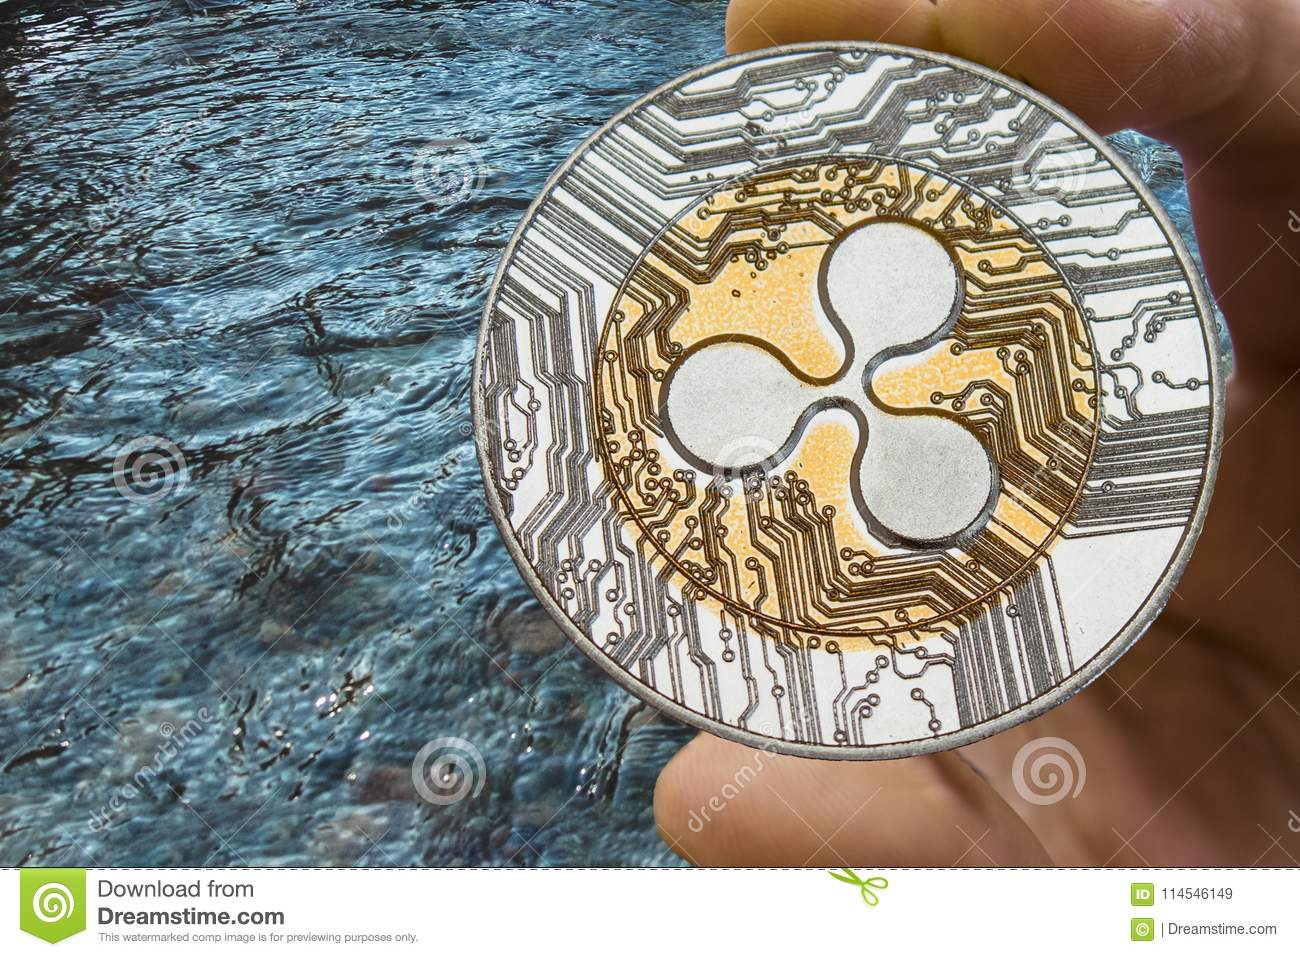 where can i buy cryptocurrency xpr